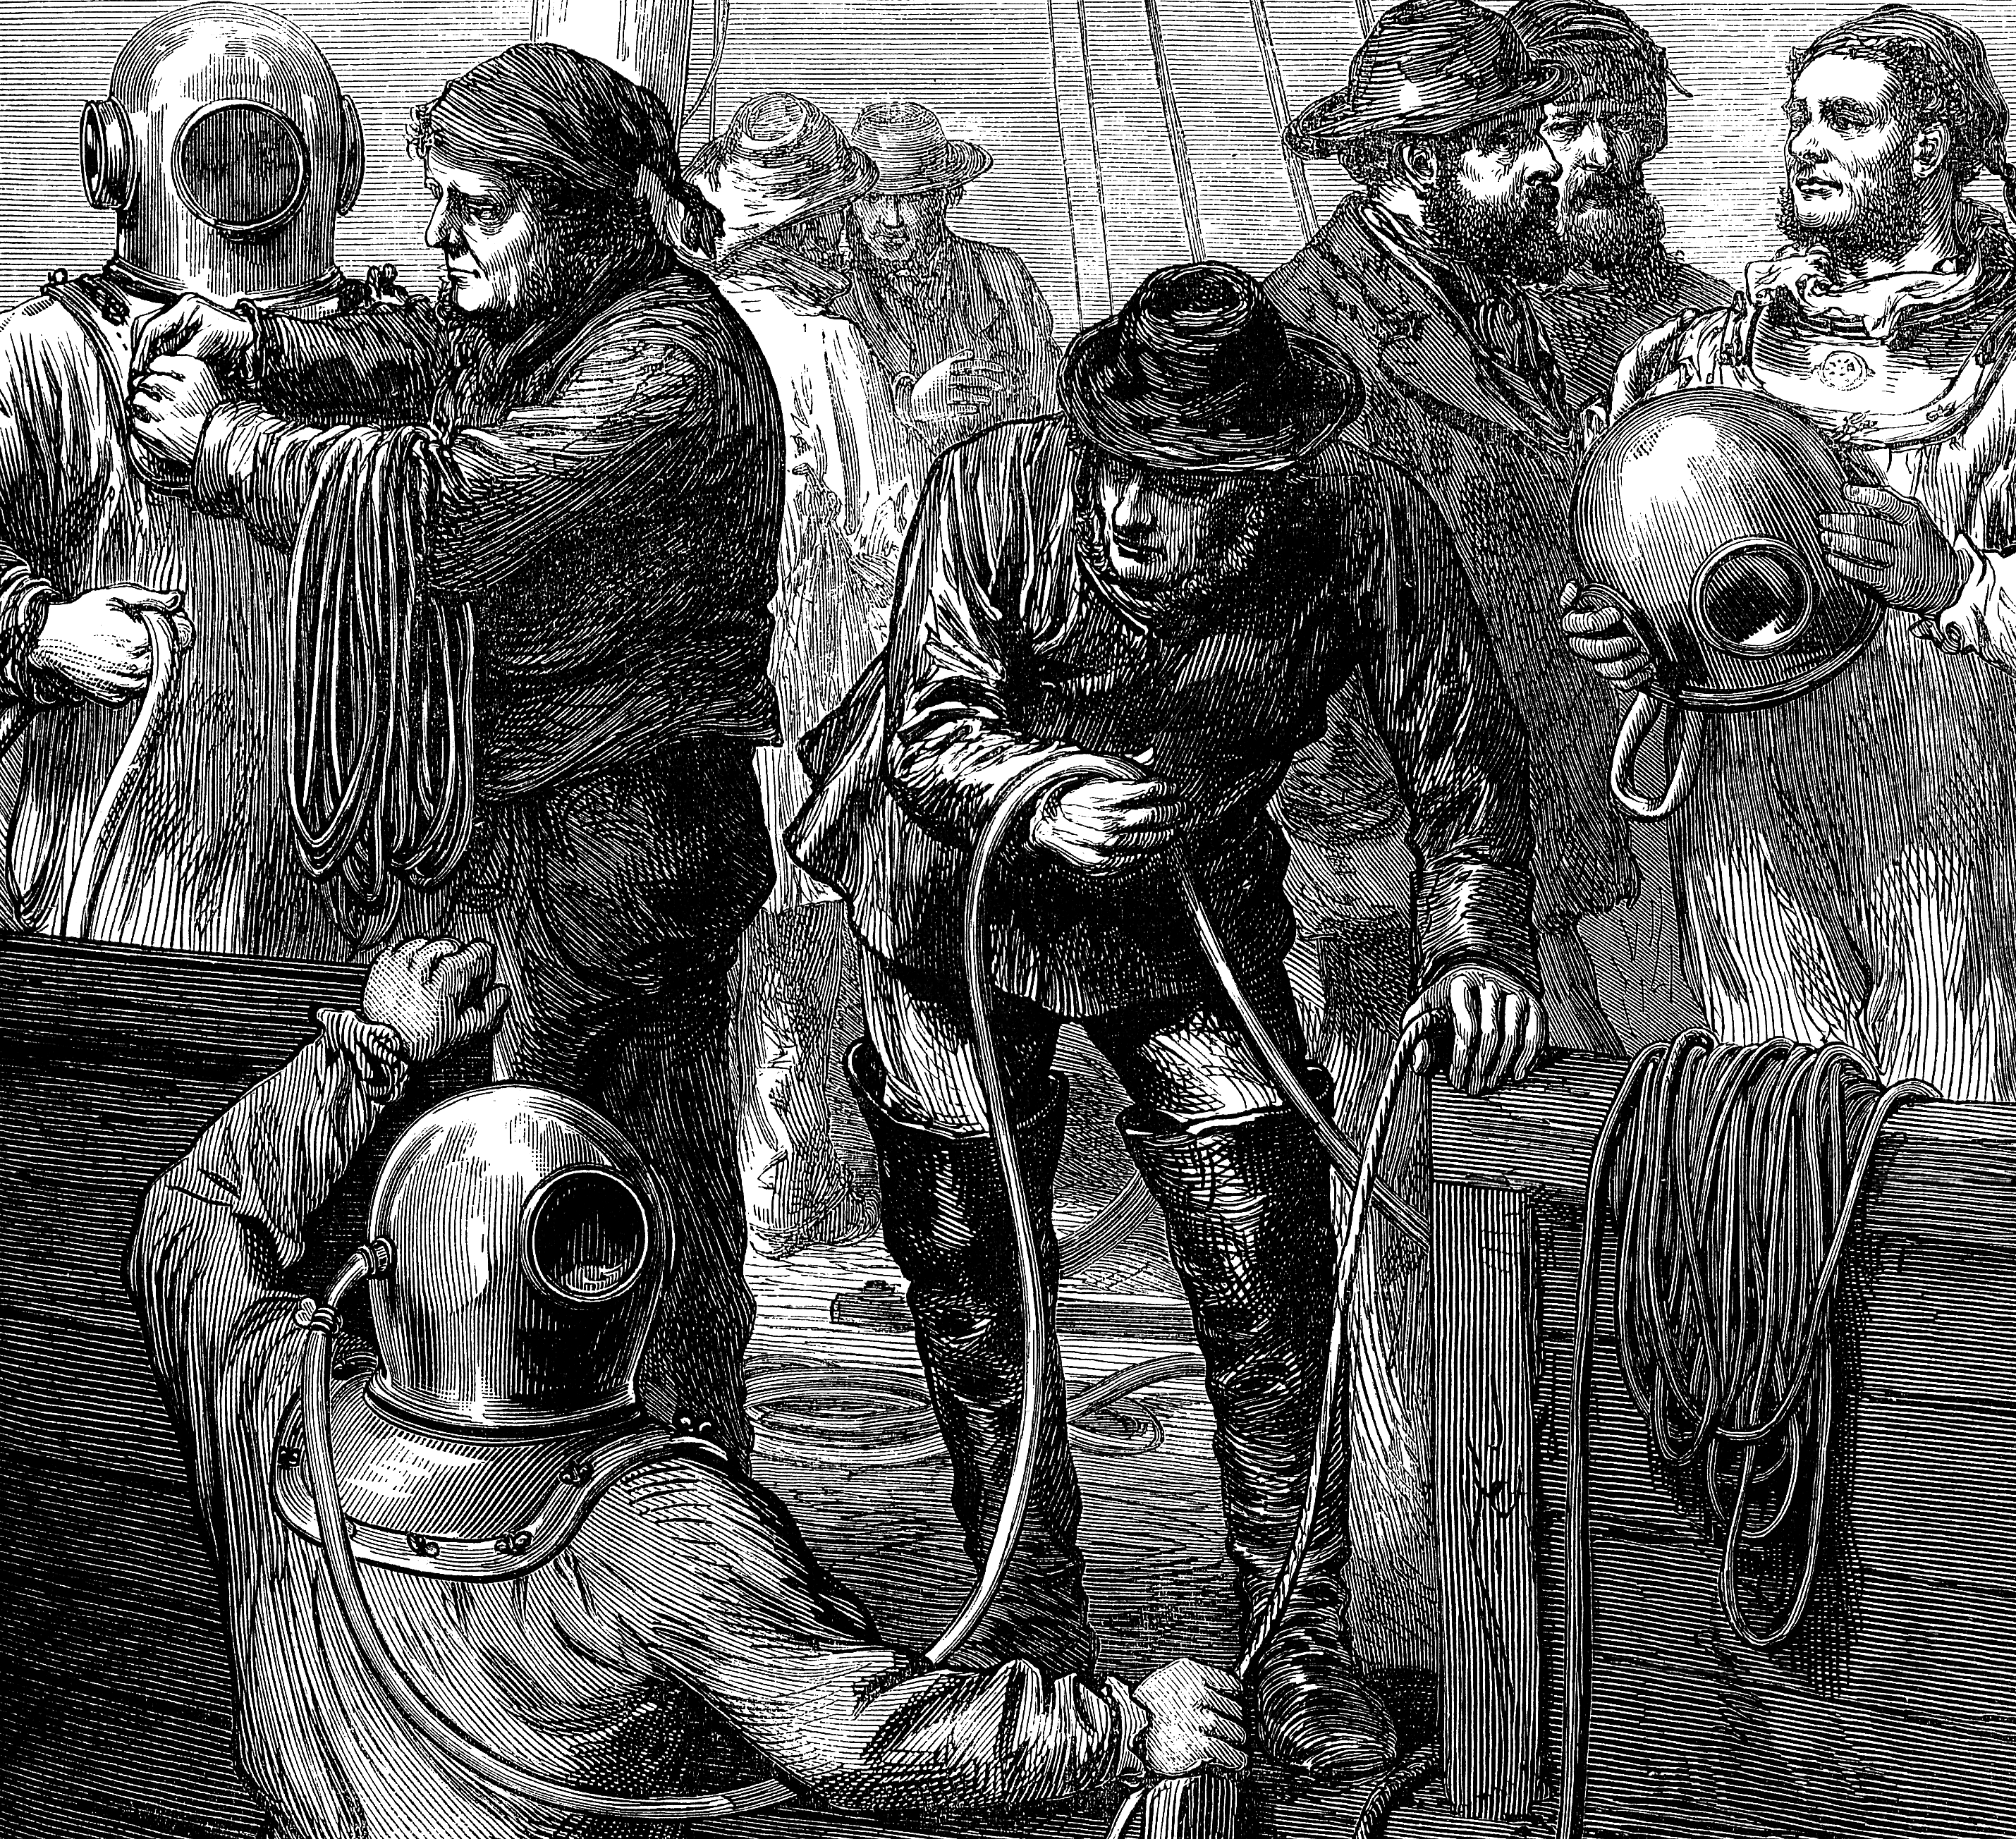 Siebe_Divers_-_Illustrated_London_News_Feb_6_1873-2.png